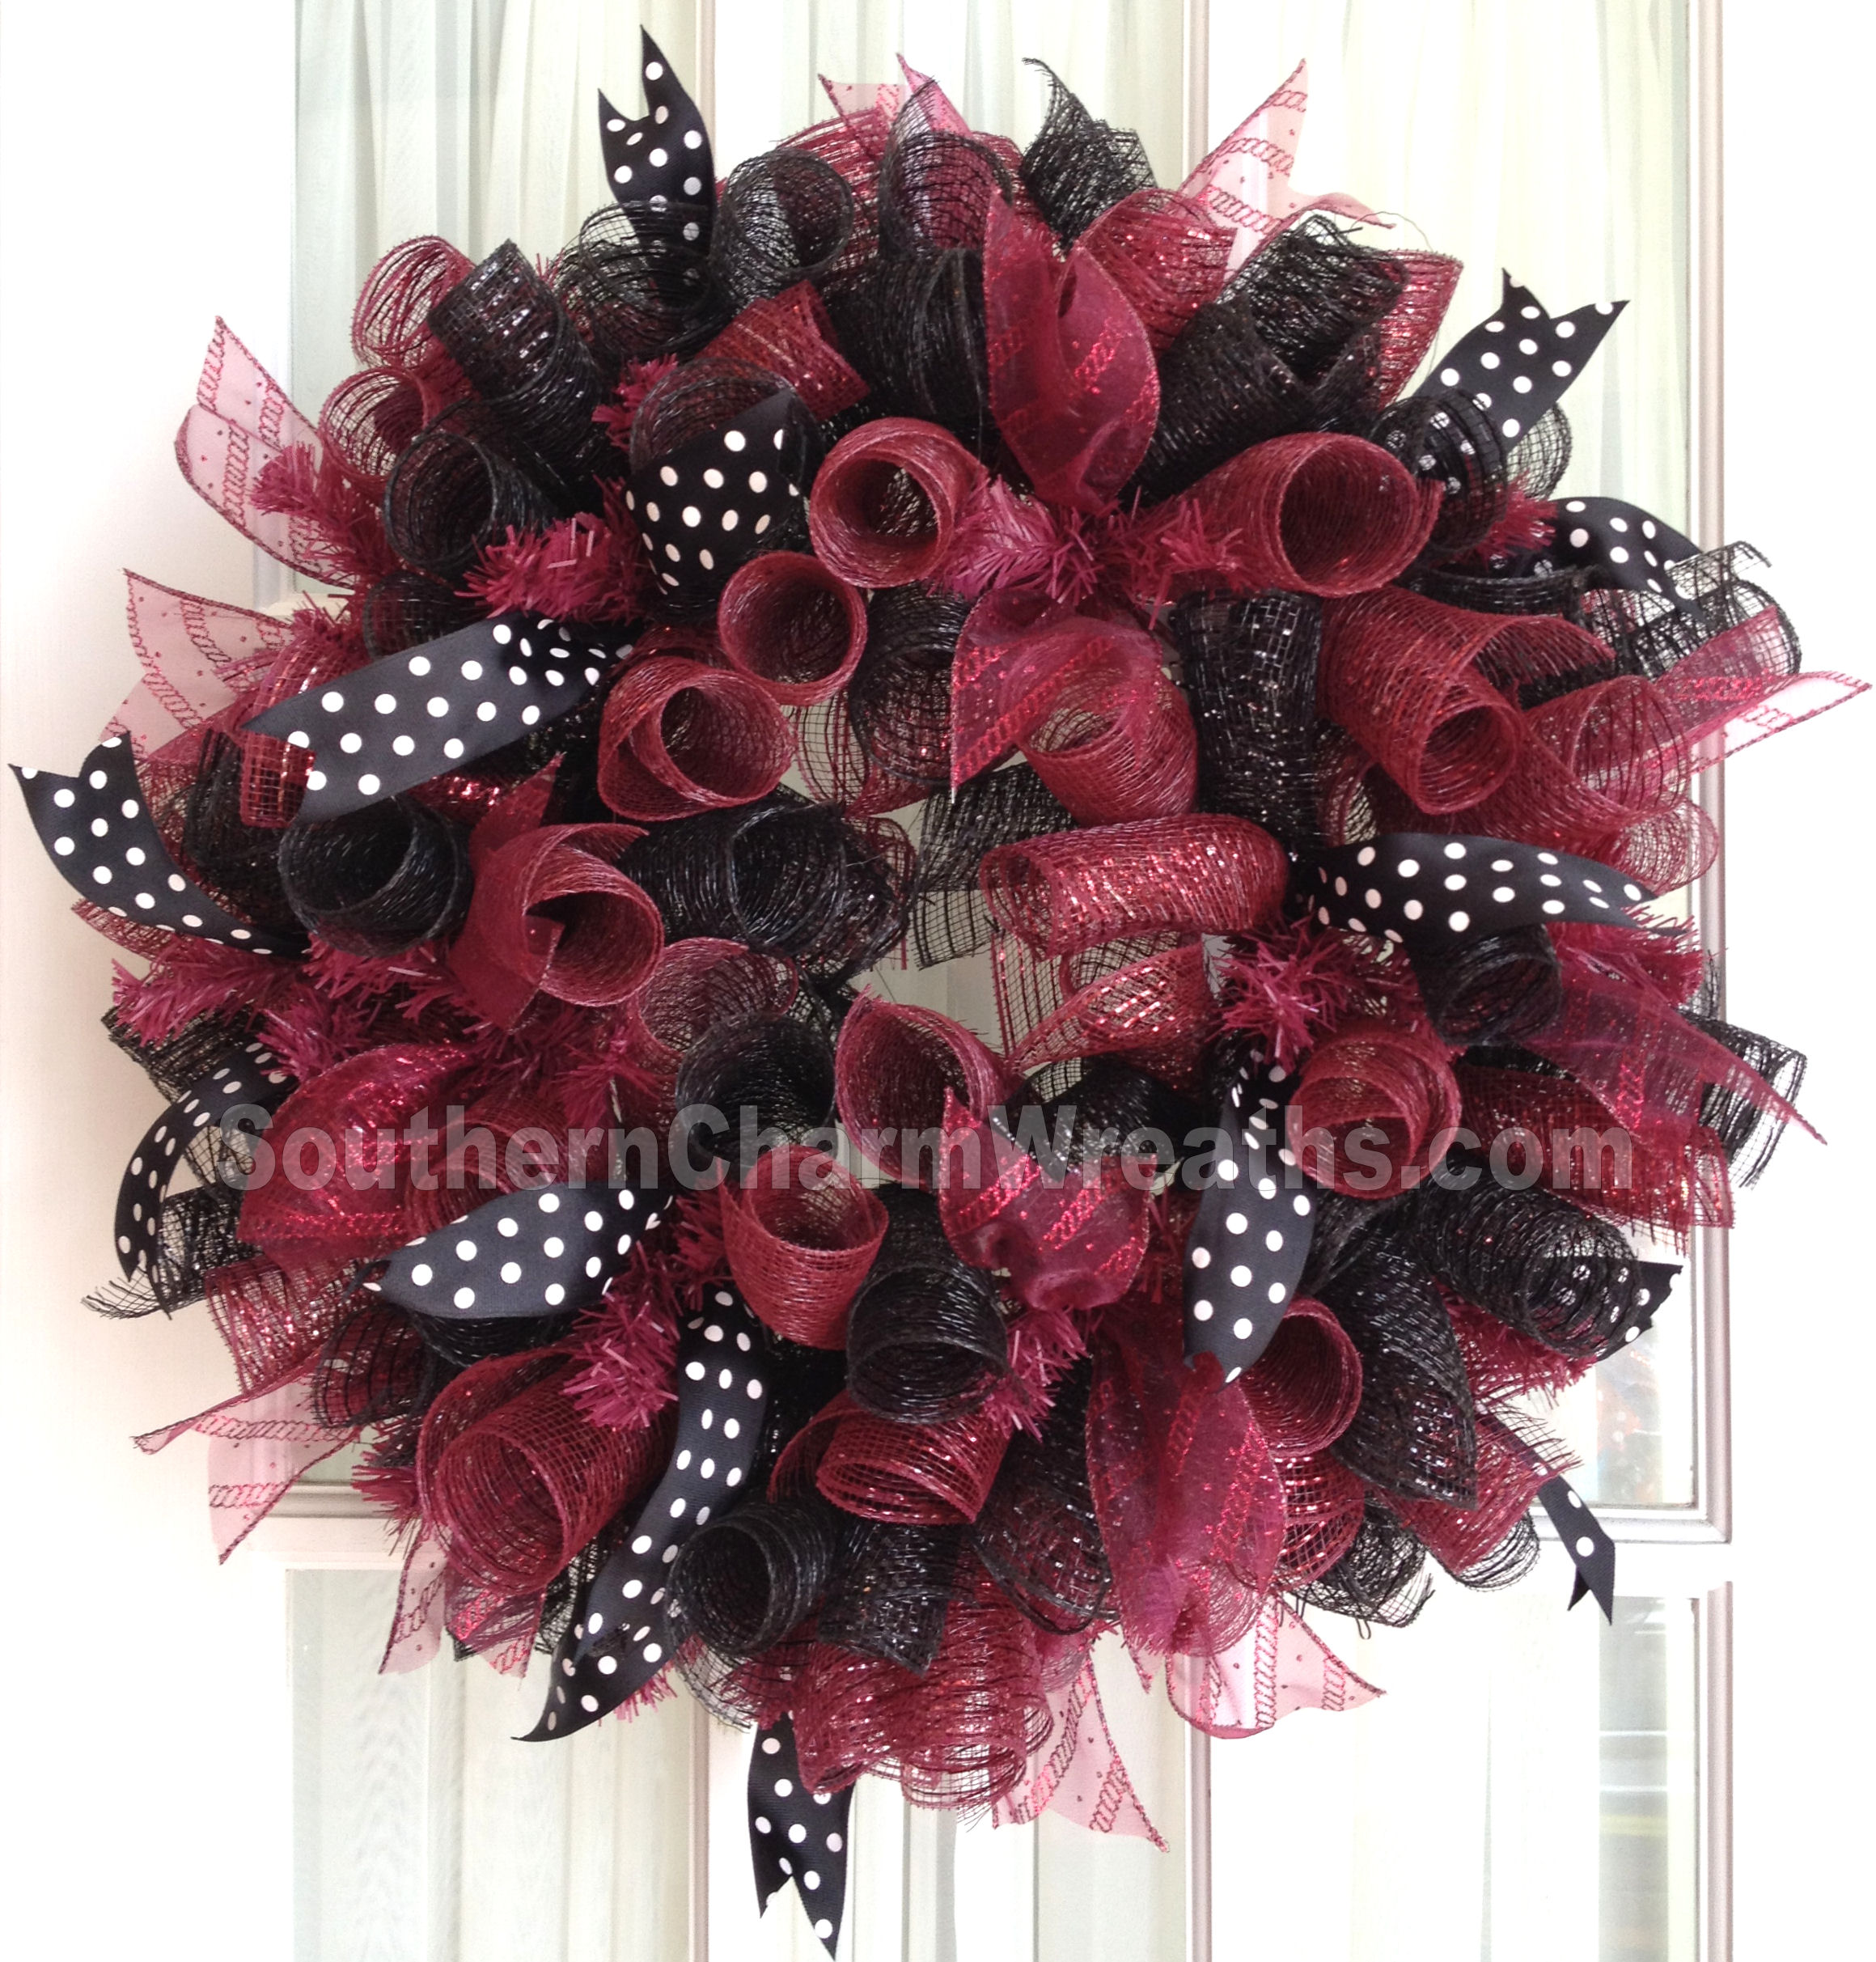 deco-mesh-wreath-gamecocks-collegiate-garnet-balck-1L